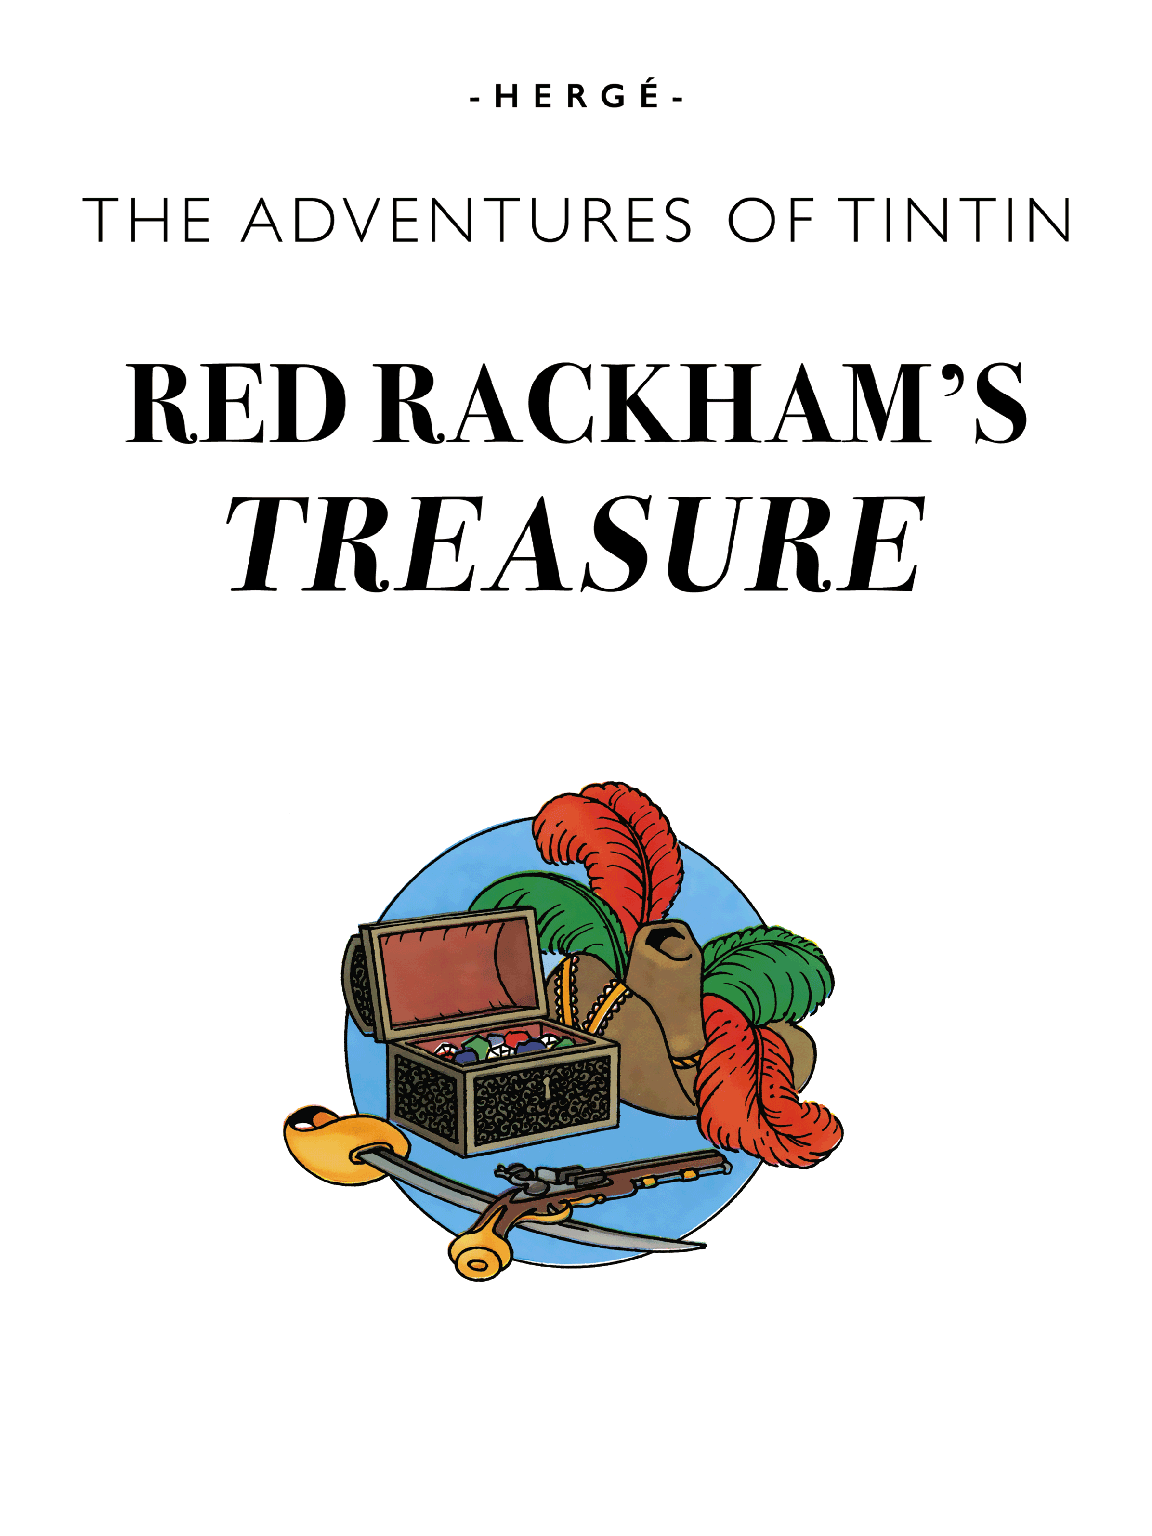 Red Rackham's Treasure - Title page